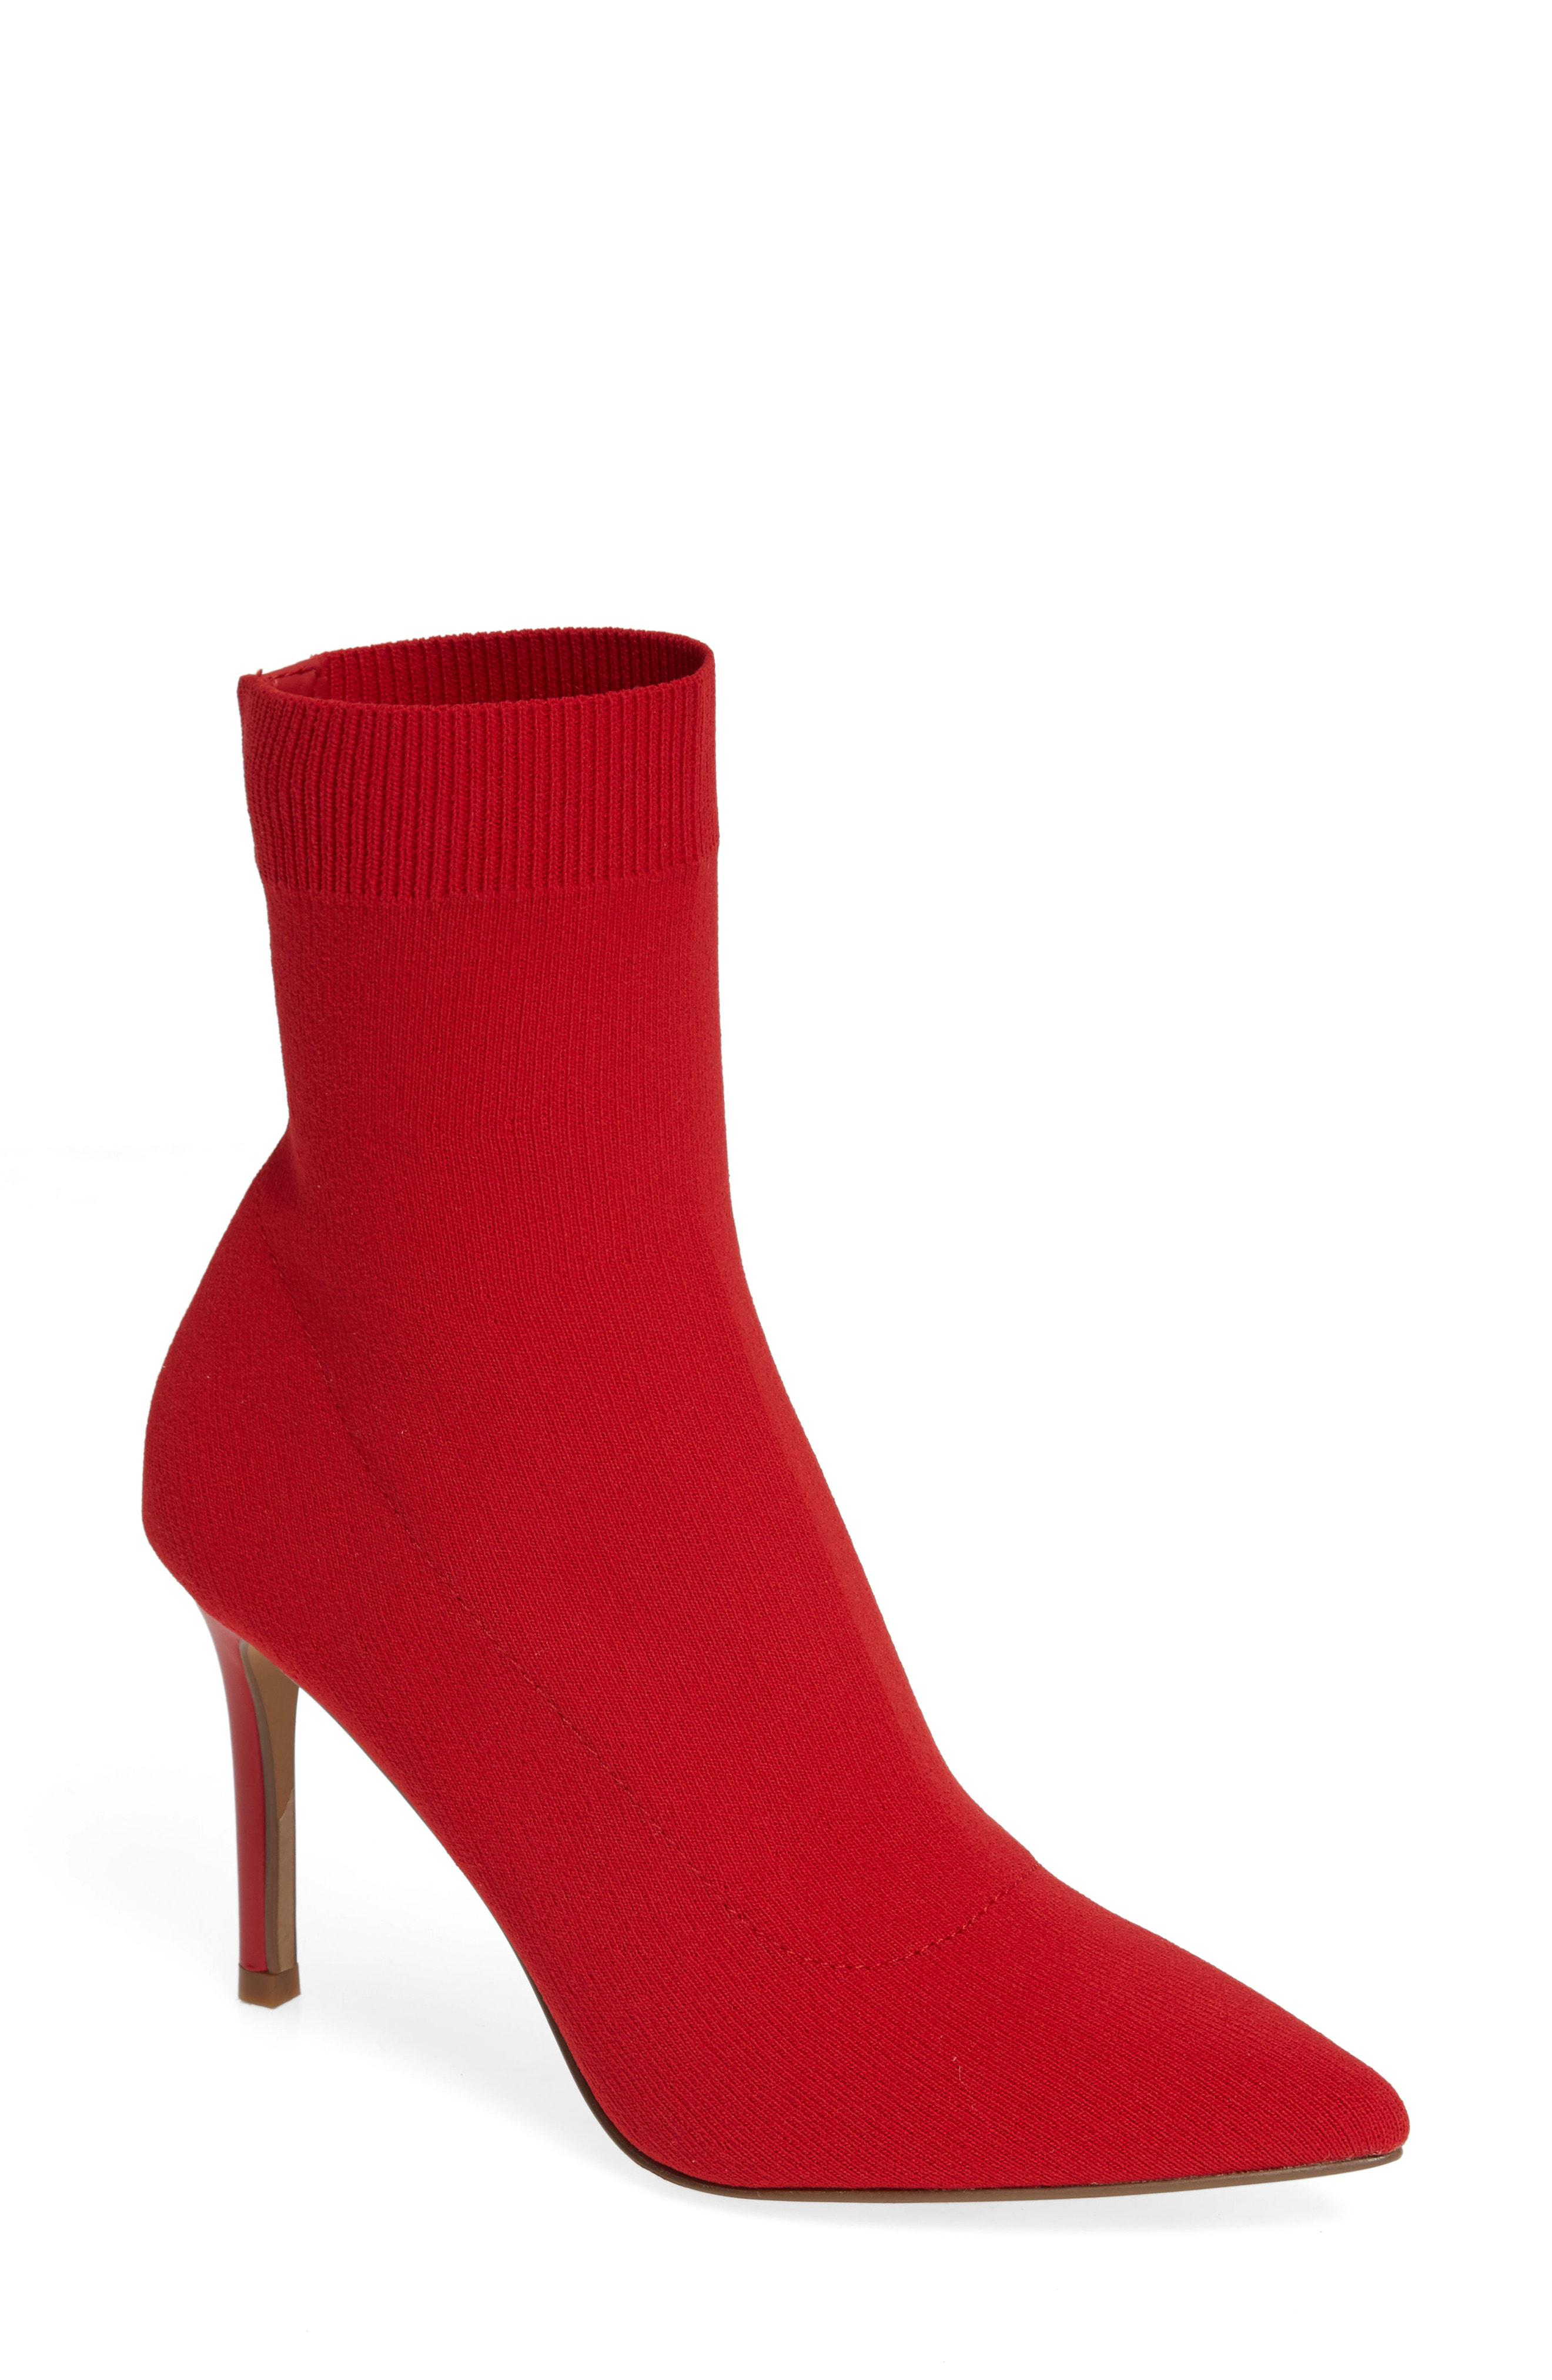 21f7e698669 Lyst - Steve Madden Claire Bootie in Red